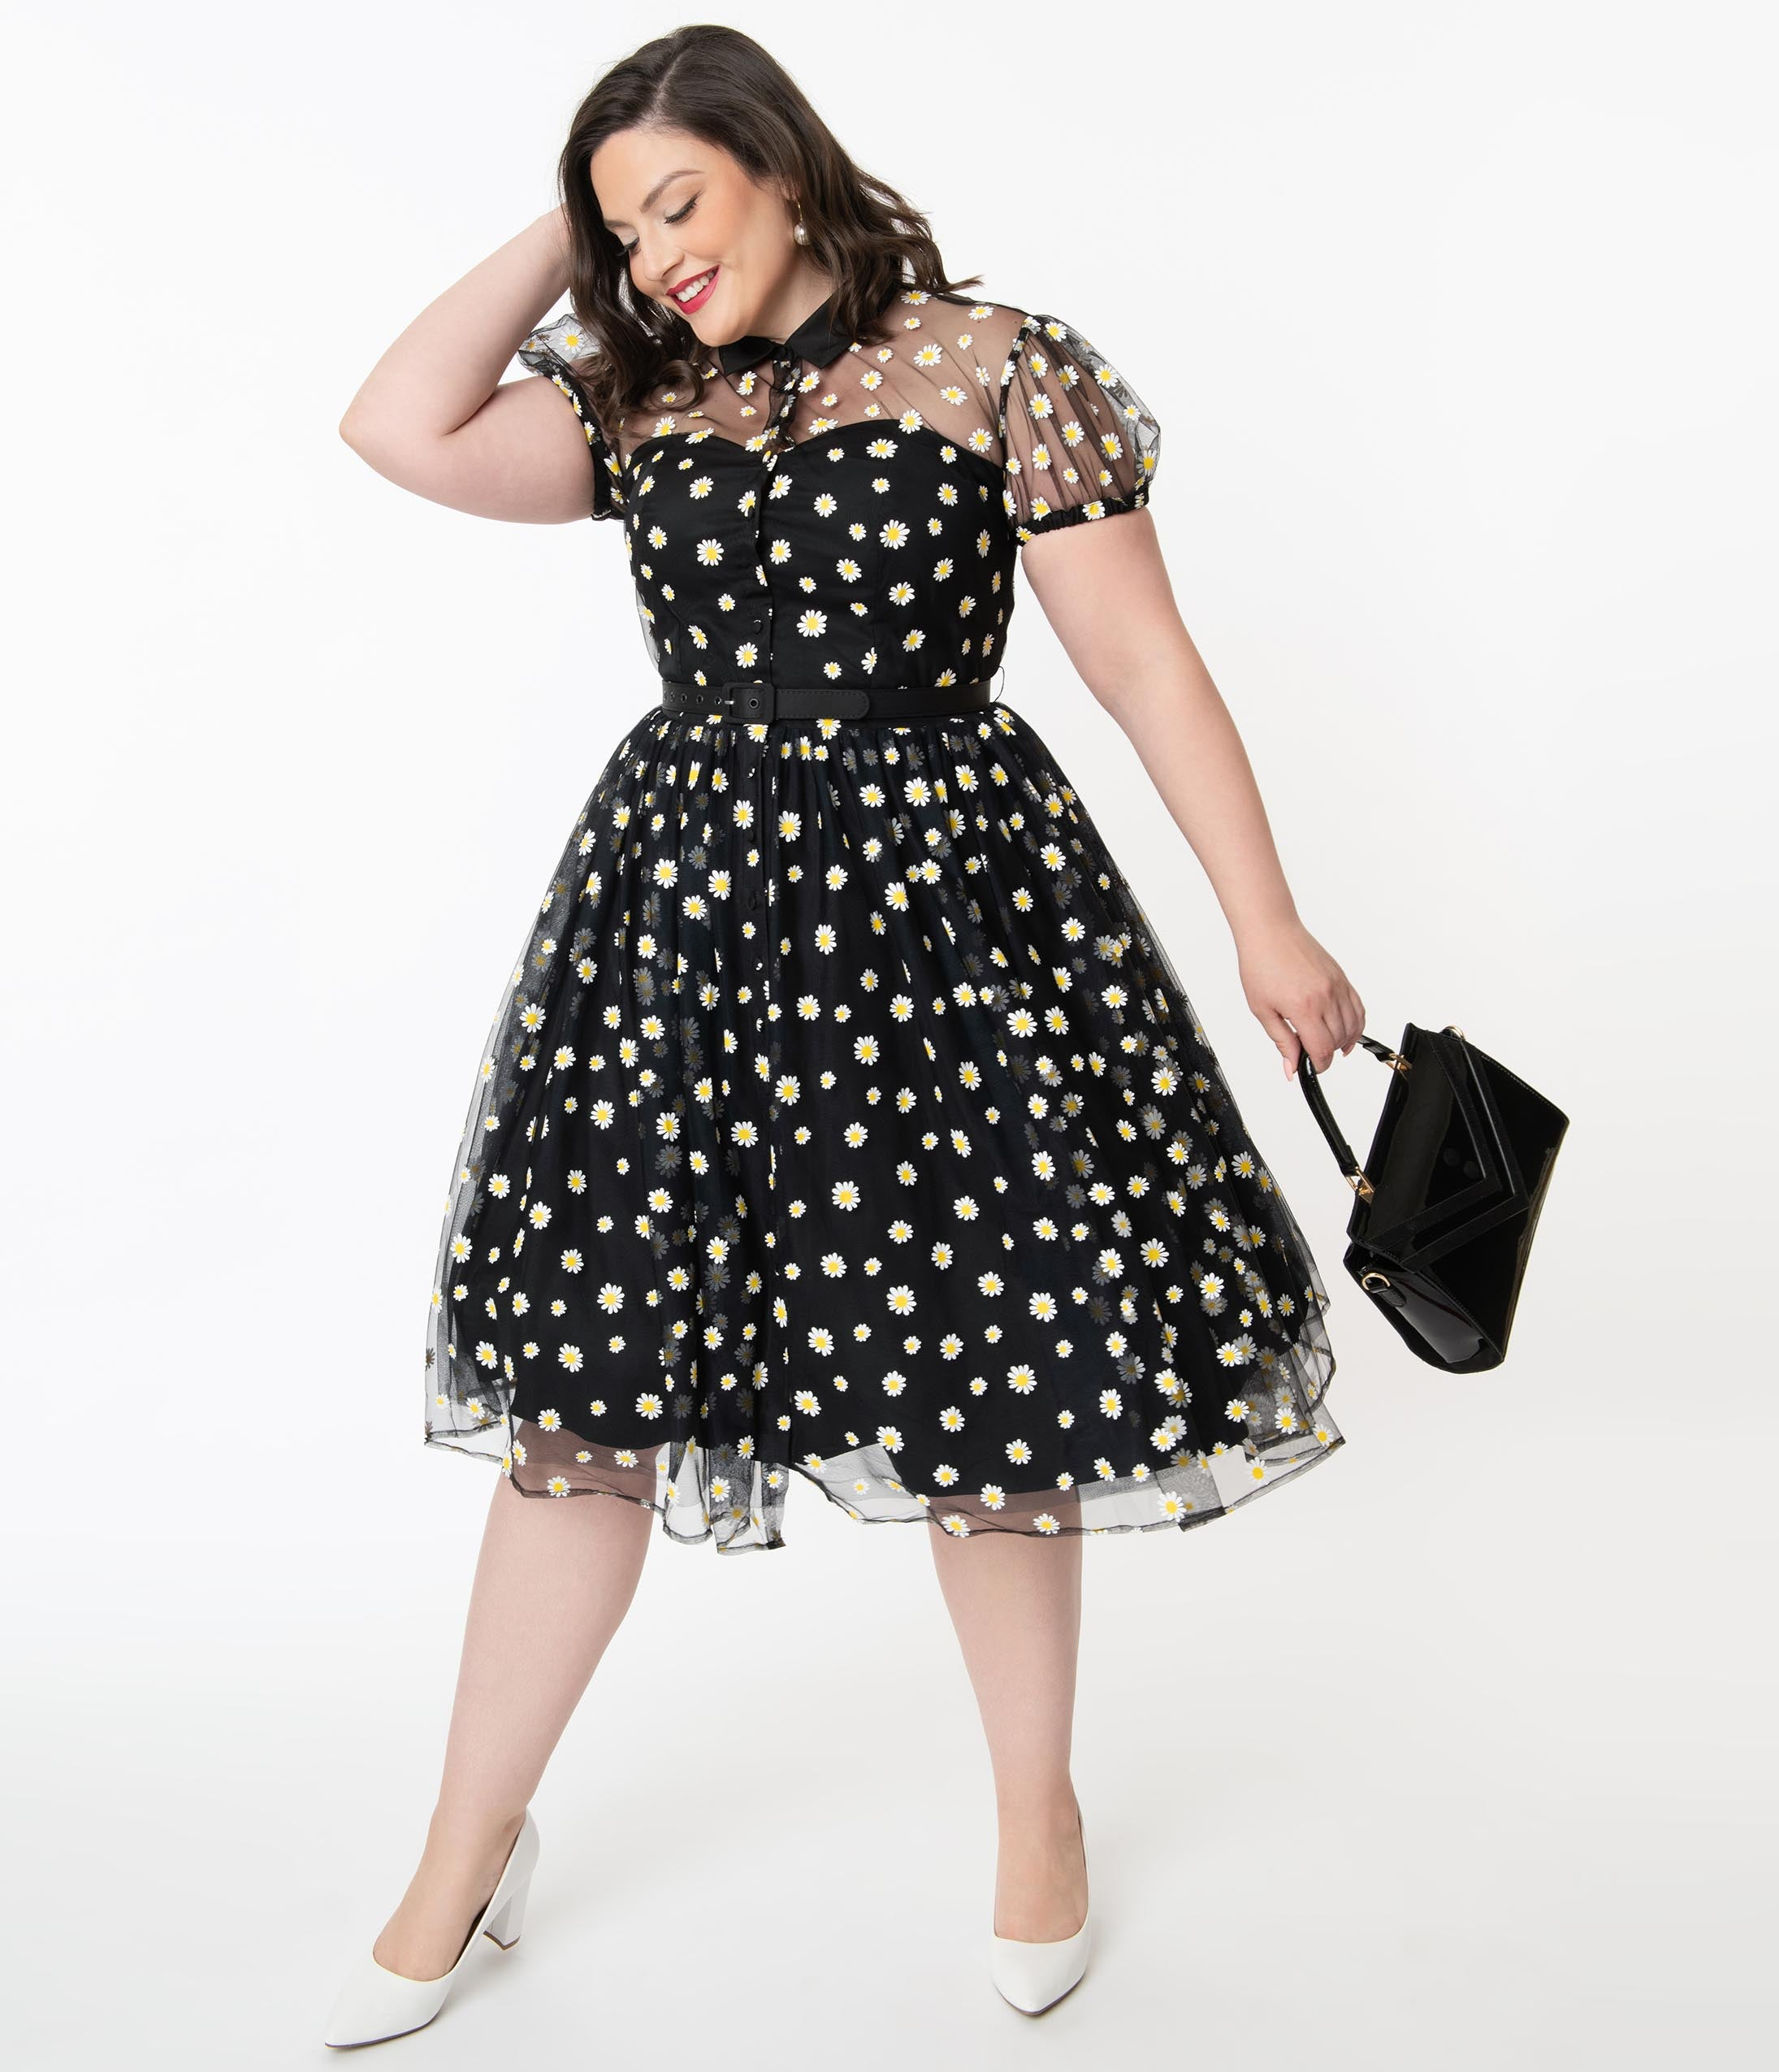 1950s Plus Size Dresses, Swing Dresses Unique Vintage Plus Size Black  White Daisy Print Hollie Swing Dress $78.00 AT vintagedancer.com